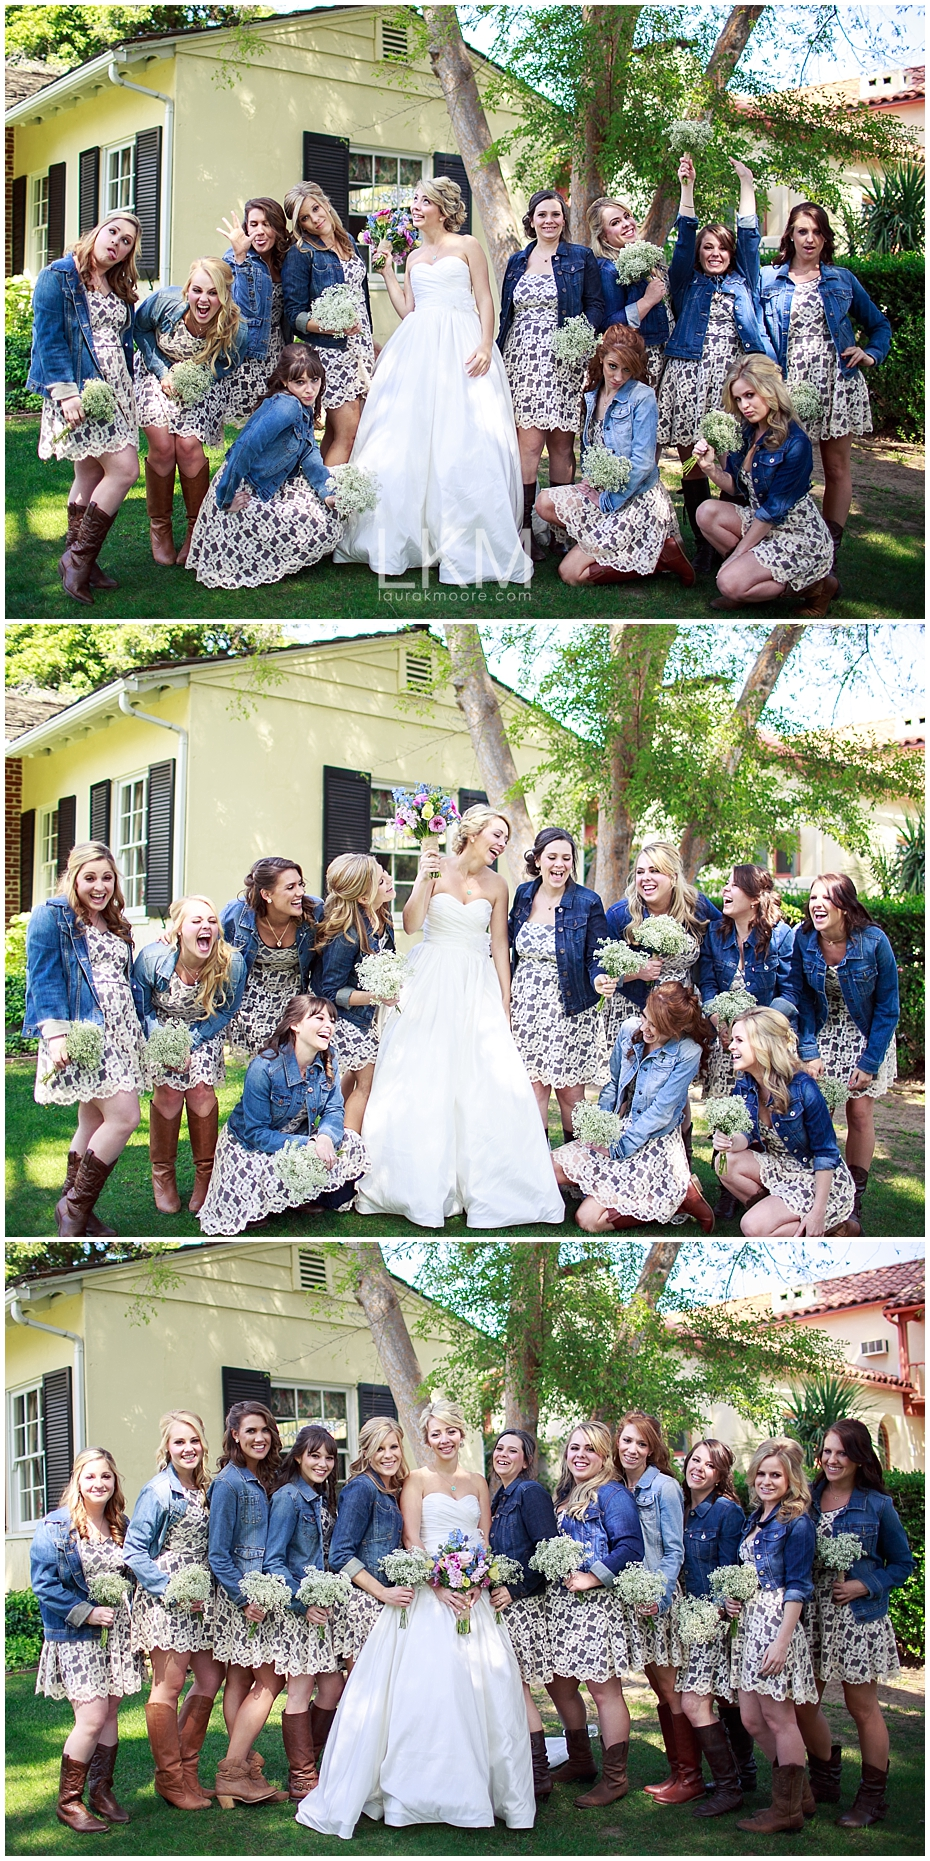 pasadena-wedding-photographer-backyard-DIY-burlap-lace-denim-bridesmaids